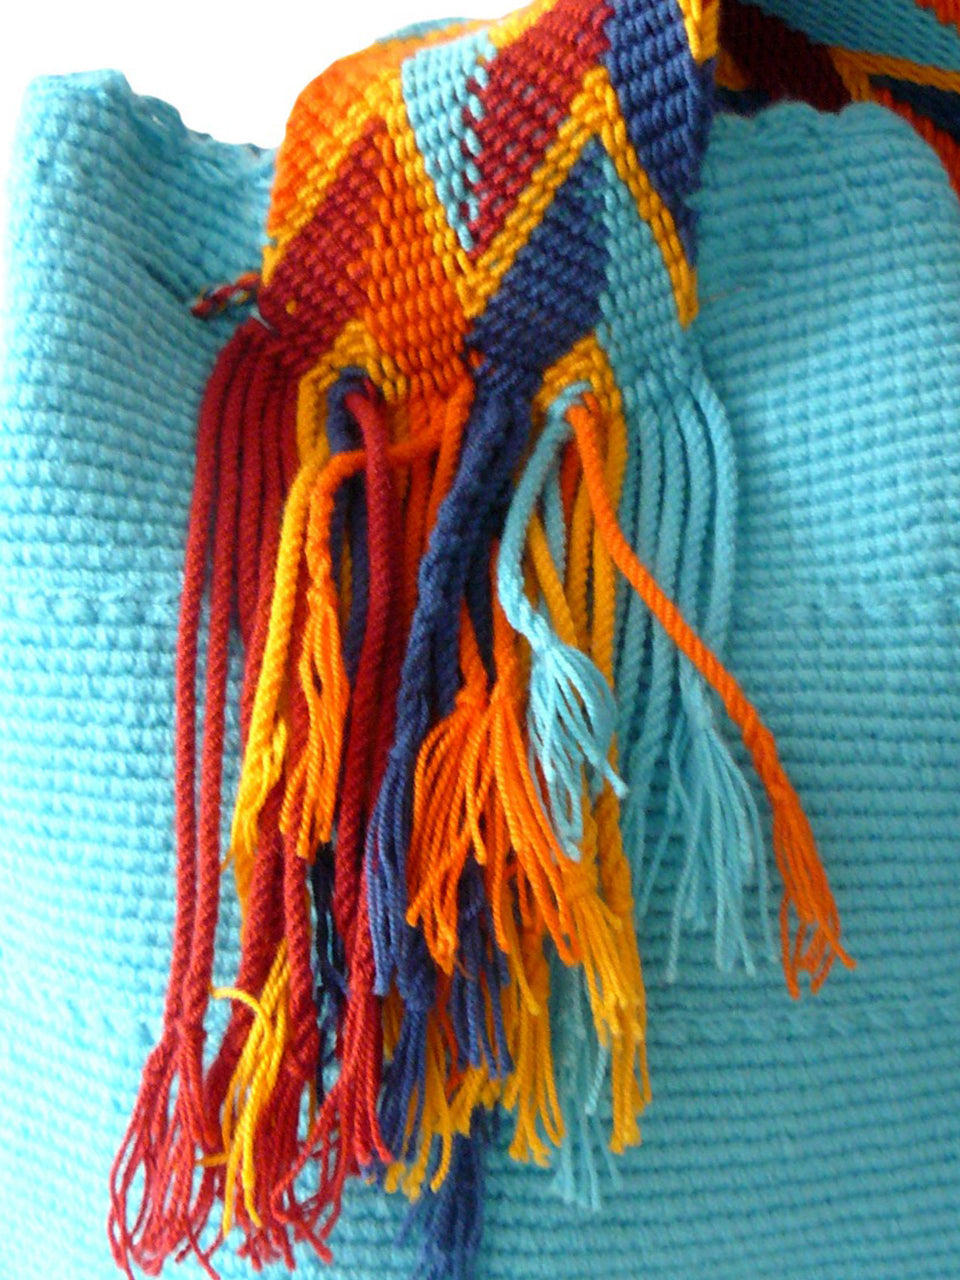 Turquoise woven shoulder bag with blue, orange, and yellow tassels Palmazul Beachwear Wayuu Mochila